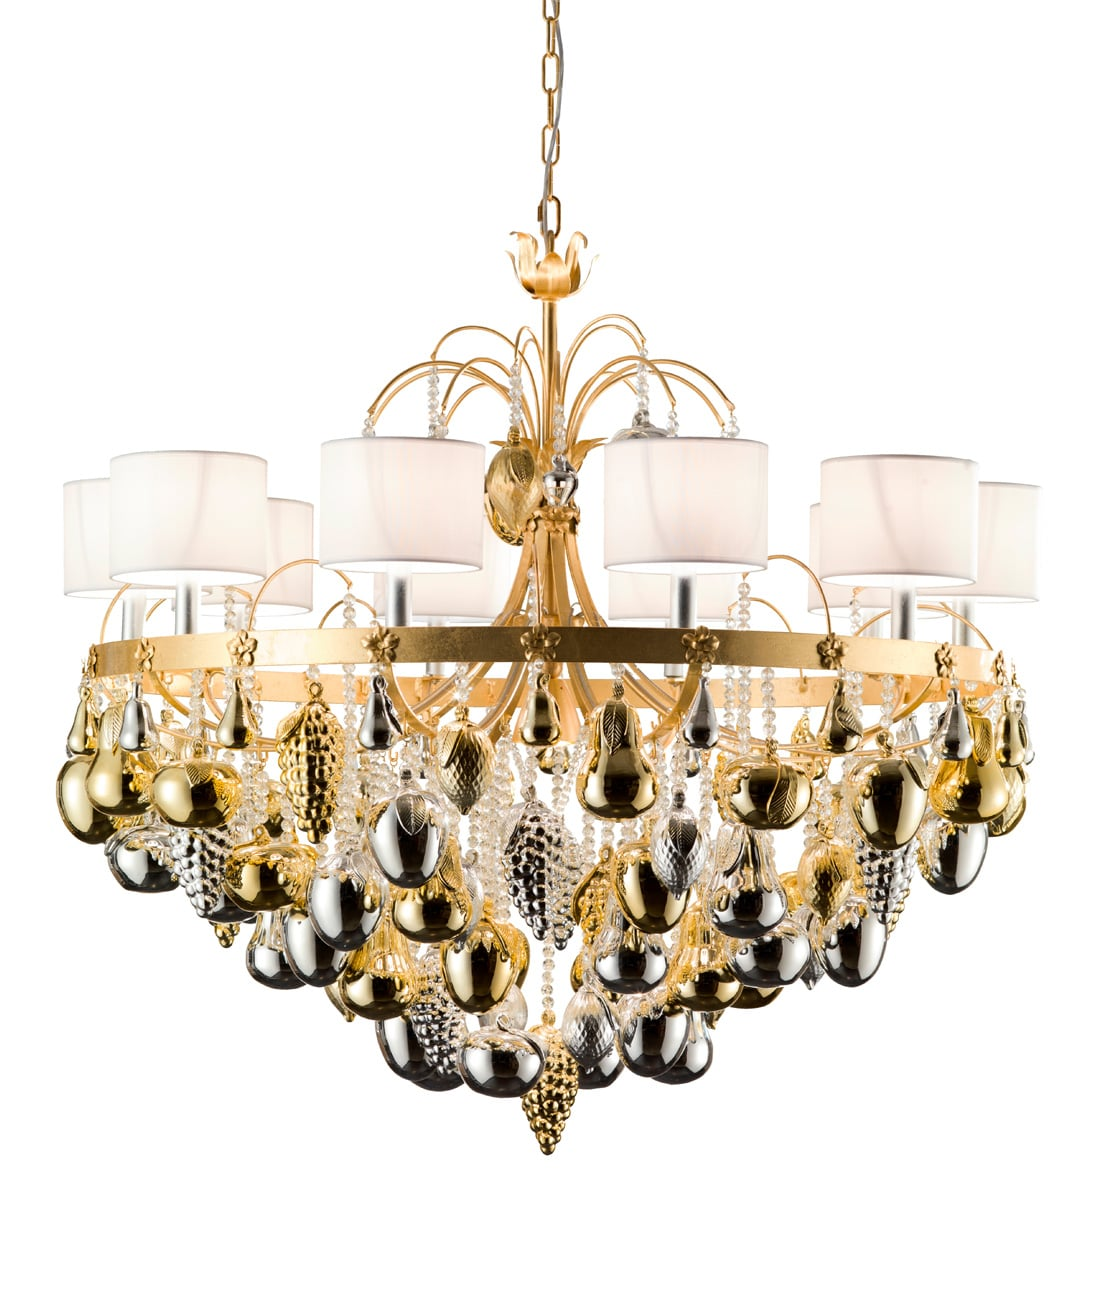 decorative-lighting-chandeliers-2